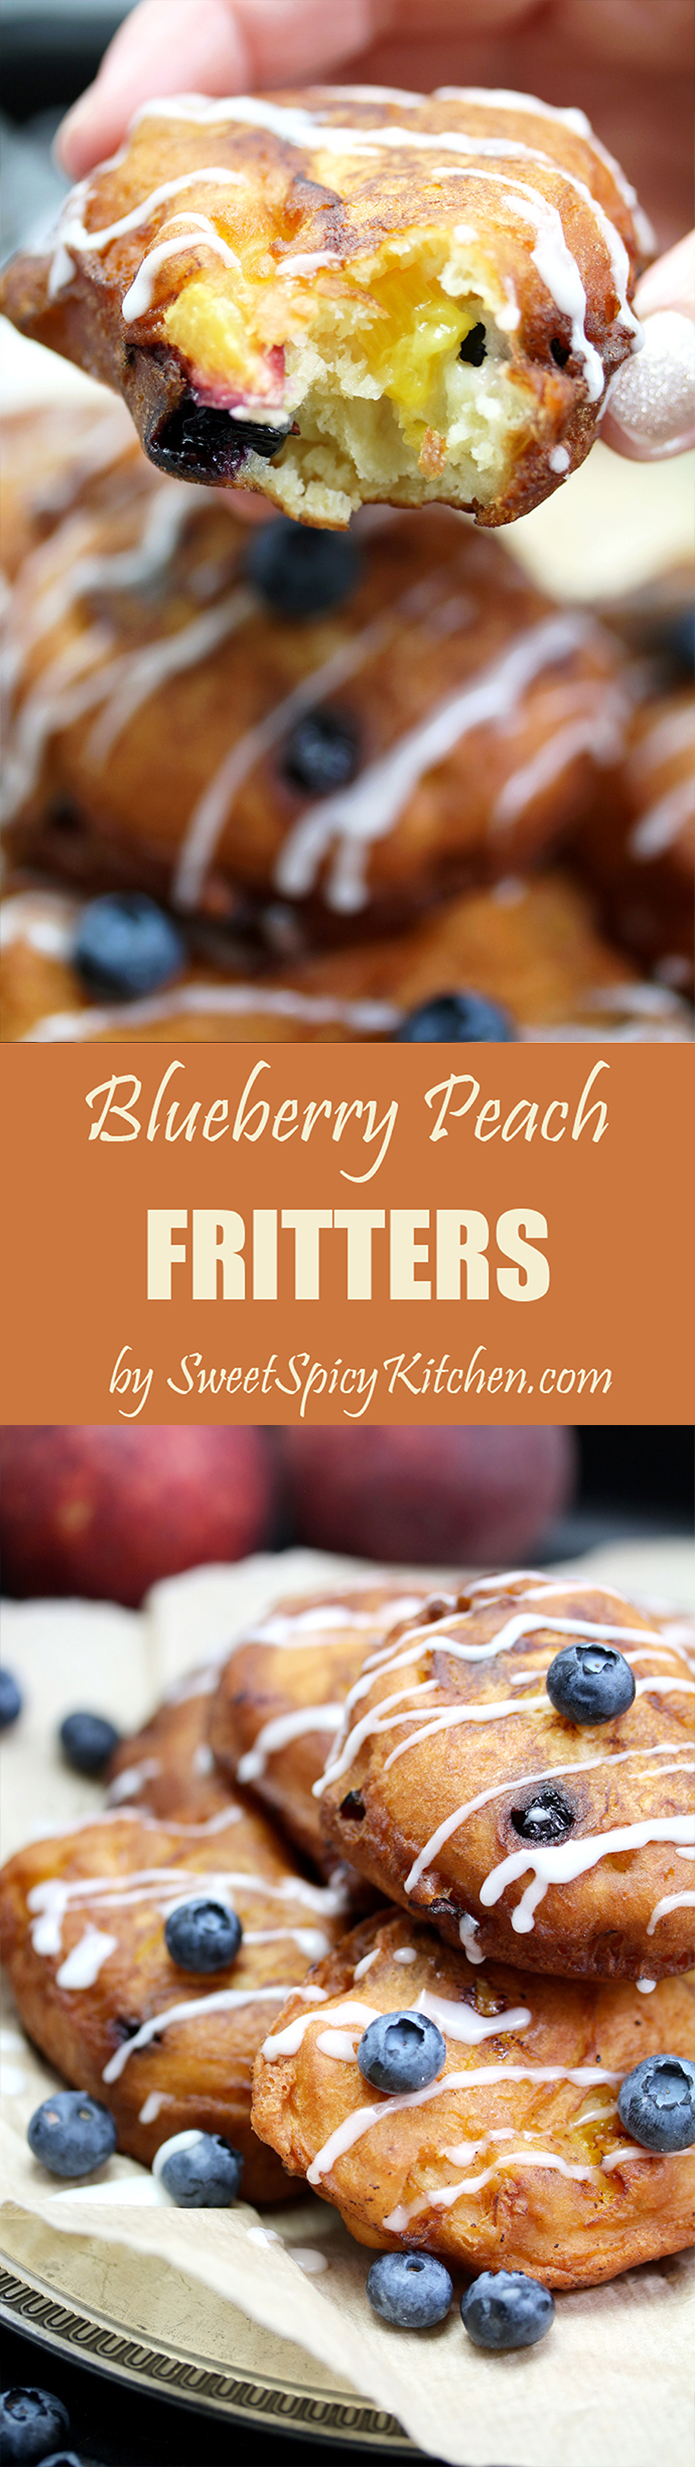 Blueberry Peach Fritters with Vanilla Glaze